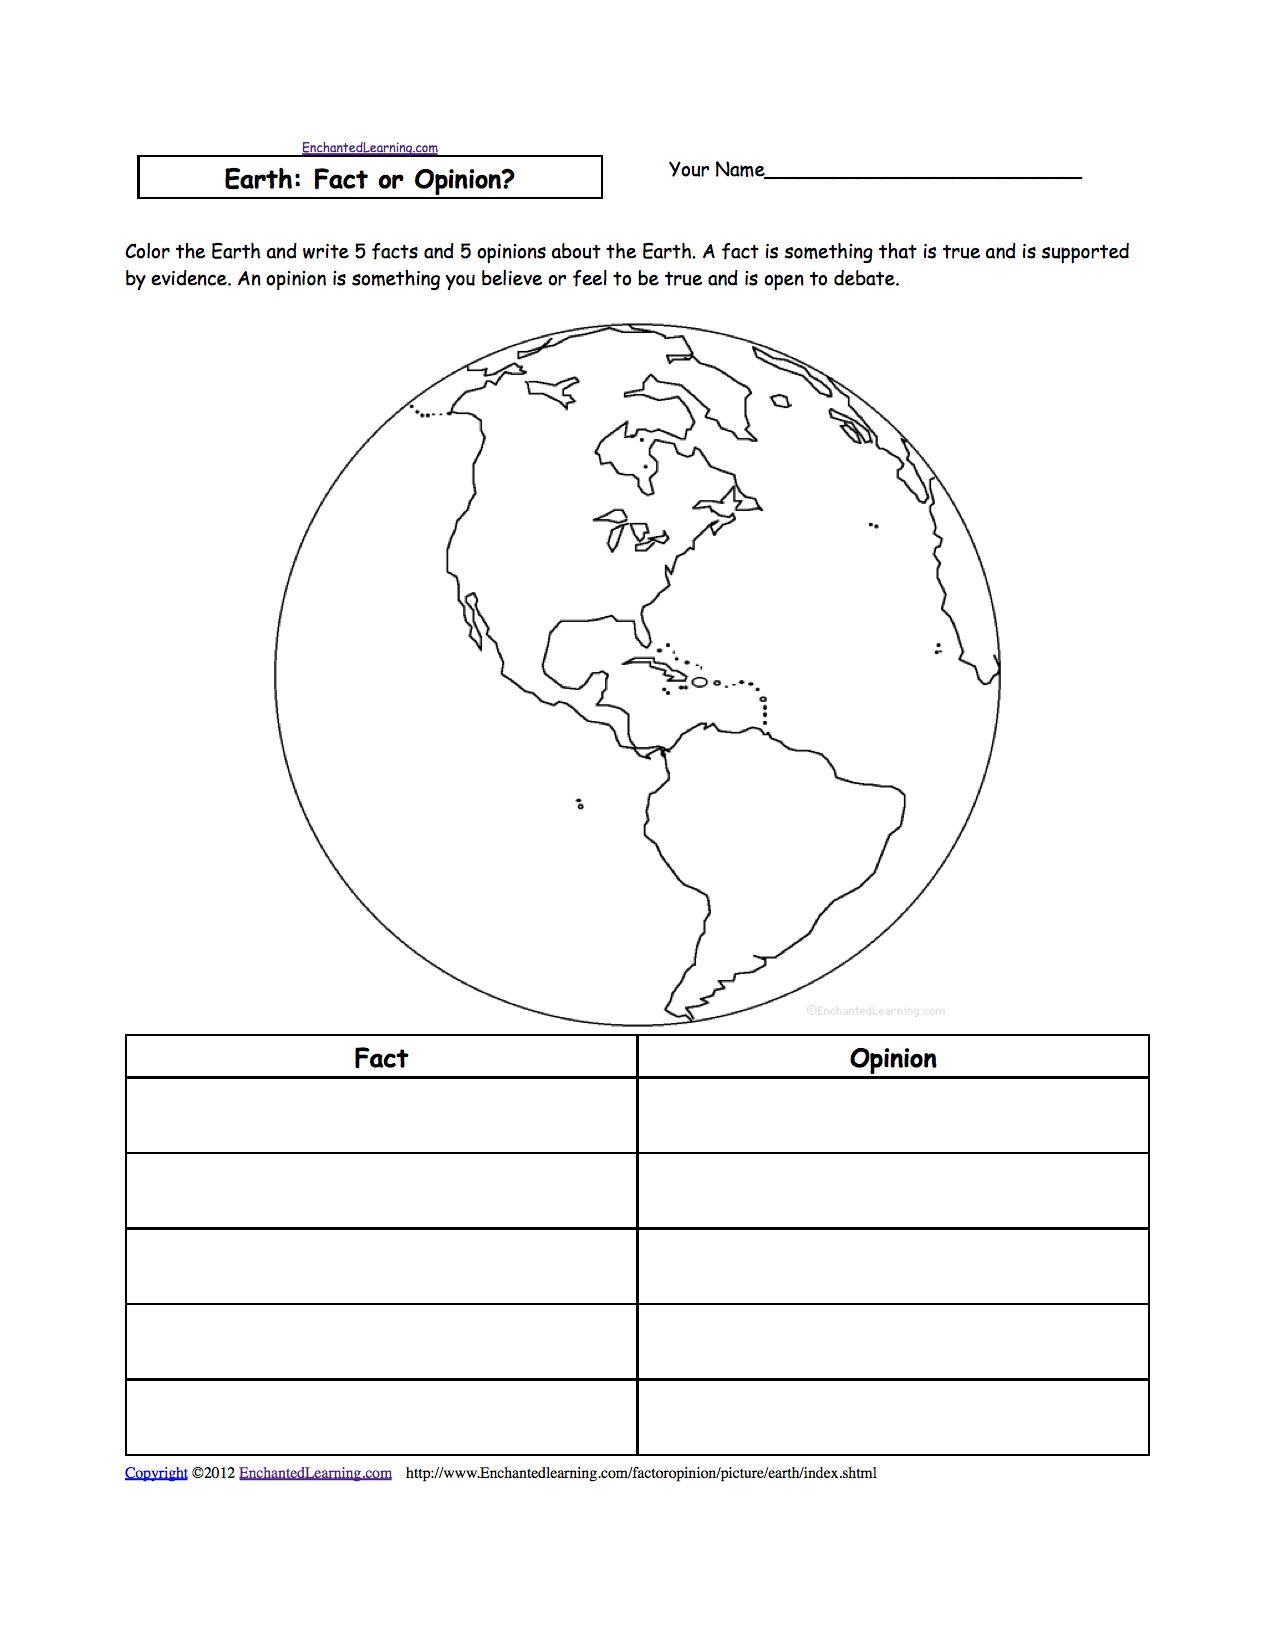 Earth-Moon System Worksheets (page 8) - Pics about space